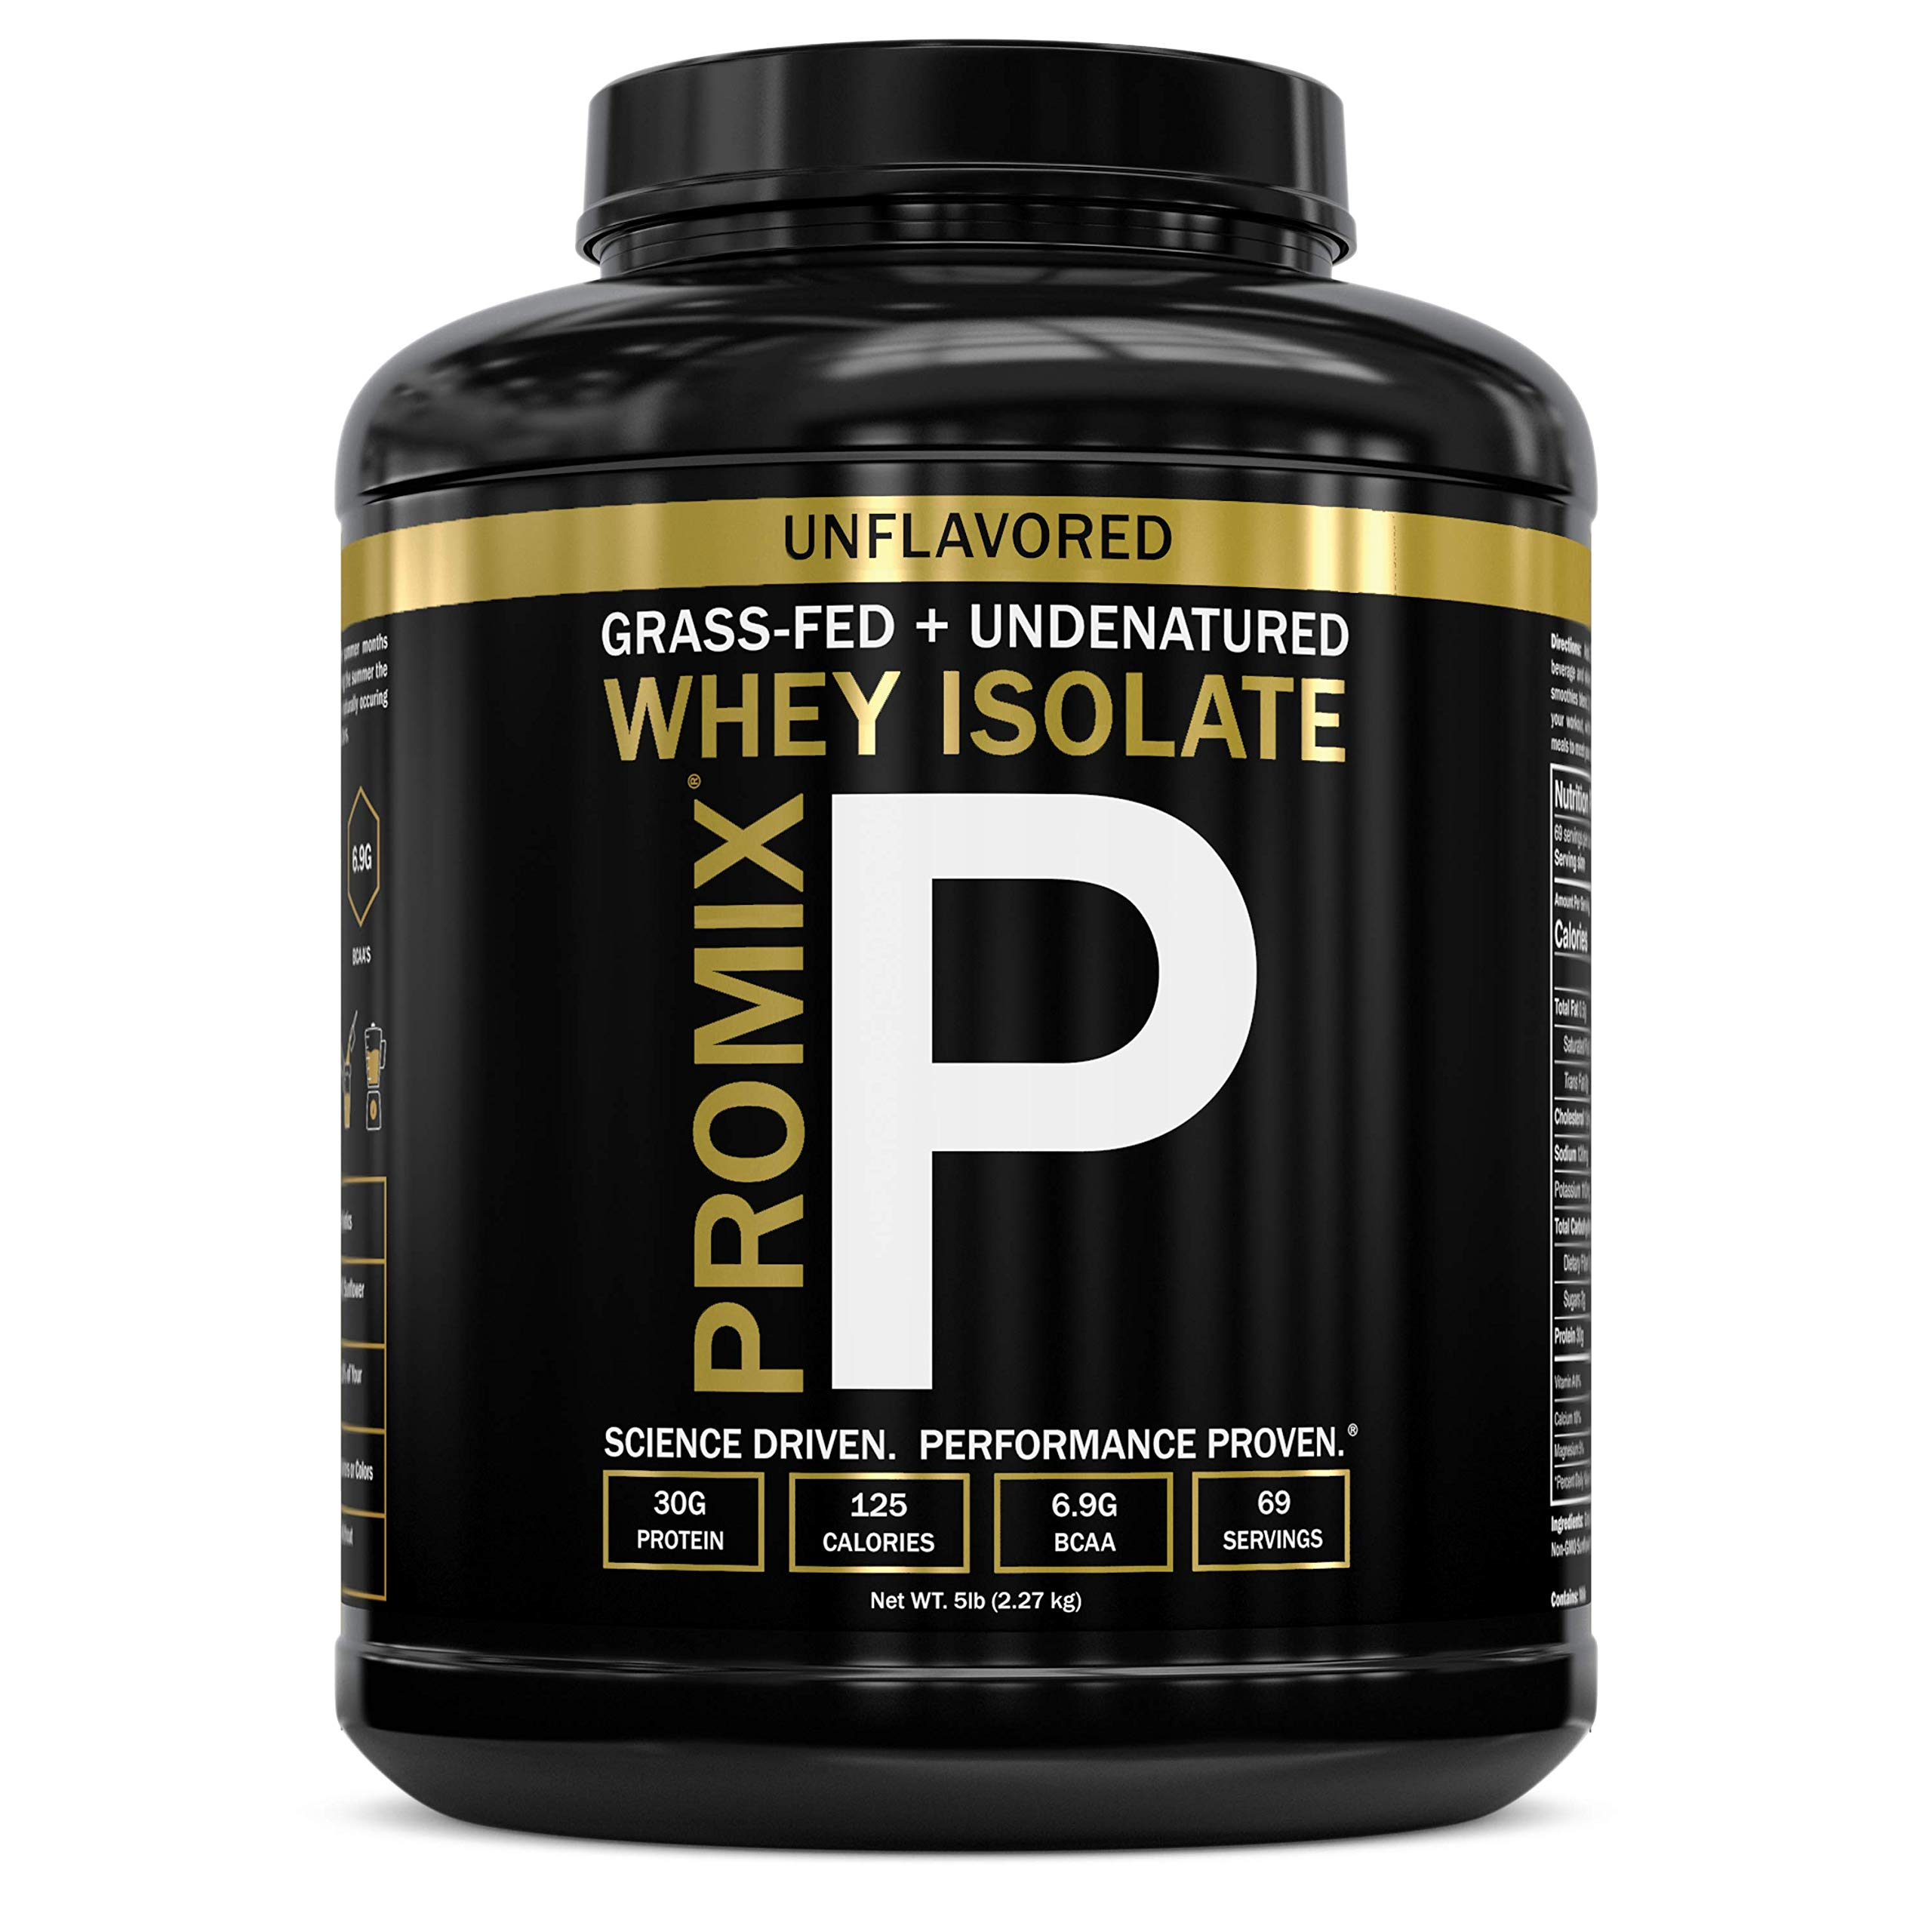 Native Whey Protein Isolate Powder Concentrate: PROMIX Standard 100 Percent All Natural Grass Fed & Undenatured Best Optimum Fitness Nutrition Shakes & Energy Smoothie Bowls: Unflavored 5lb by ProMix Nutrition